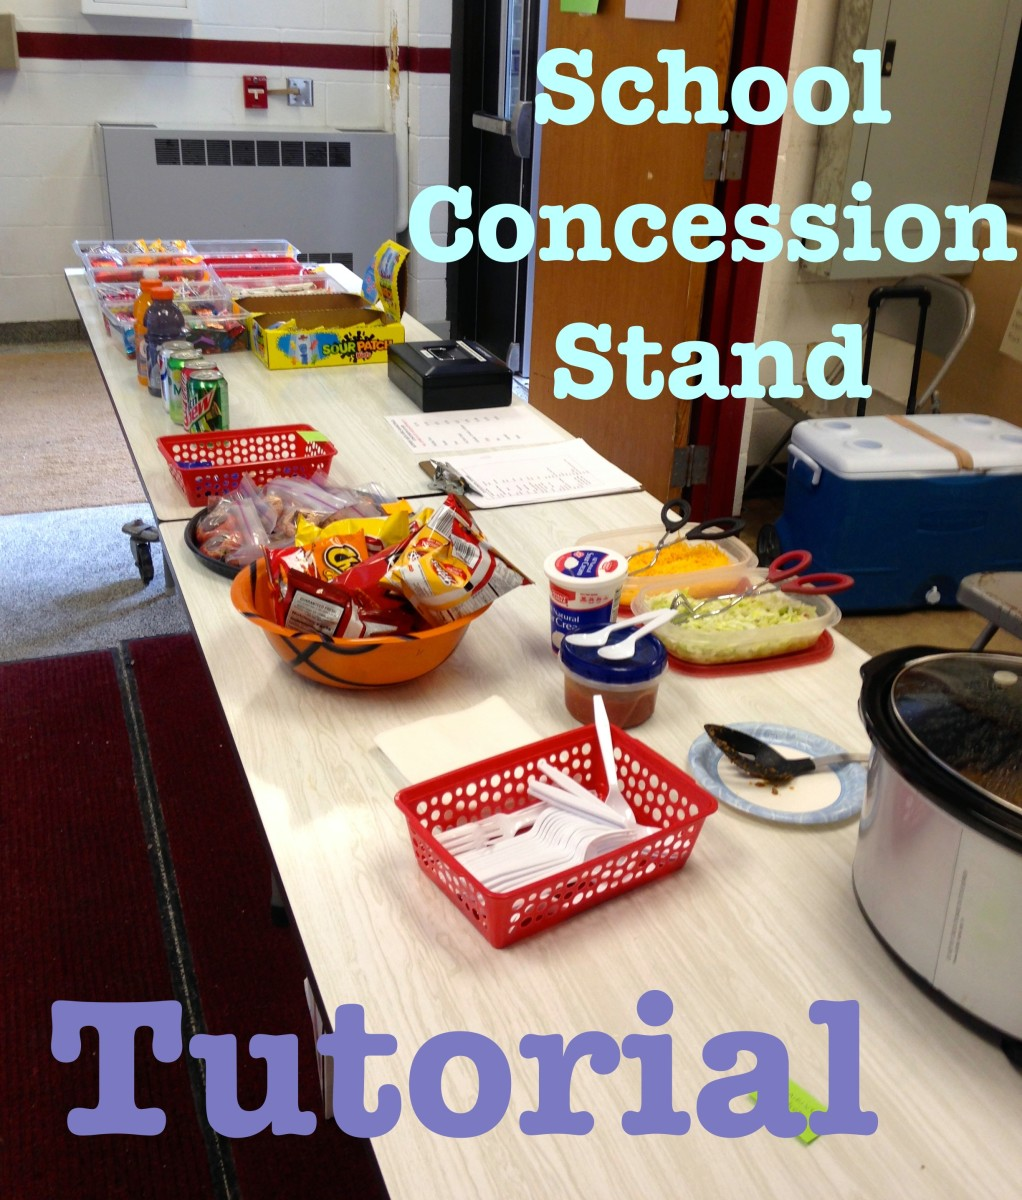 How to Run a School Concession Stand